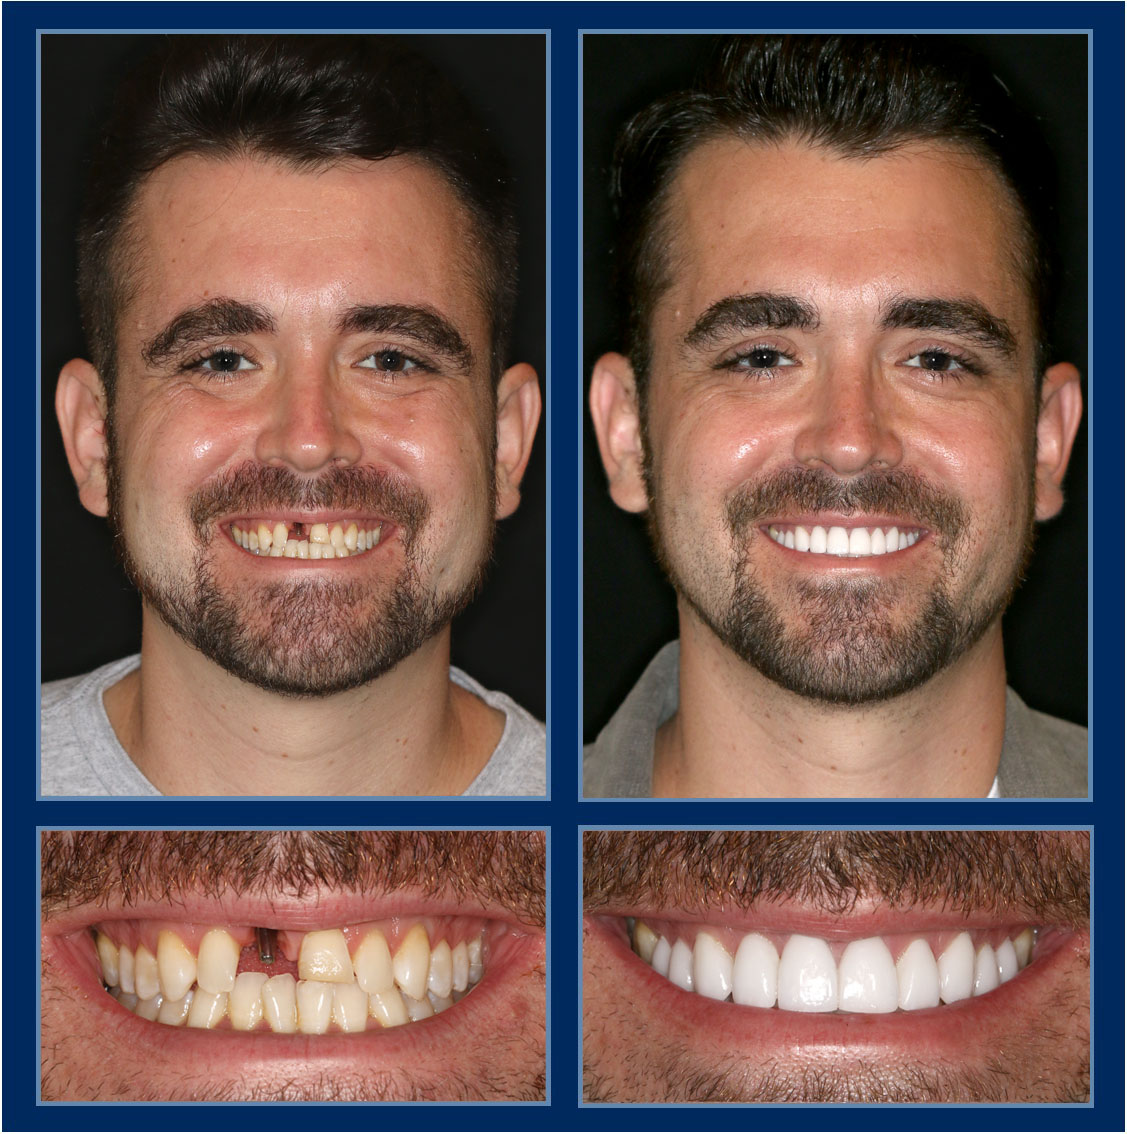 When you come into our office for #veneers, crowns, bridges, #dentalimplants or #reconstructivedentistry, you walk out with pure confidence! http://TheCosmeticDentistsOfAustin.com #smilemakeover #cosmeticdentist #cosmeticdentistry #atxpic.twitter.com/X77EihXO98